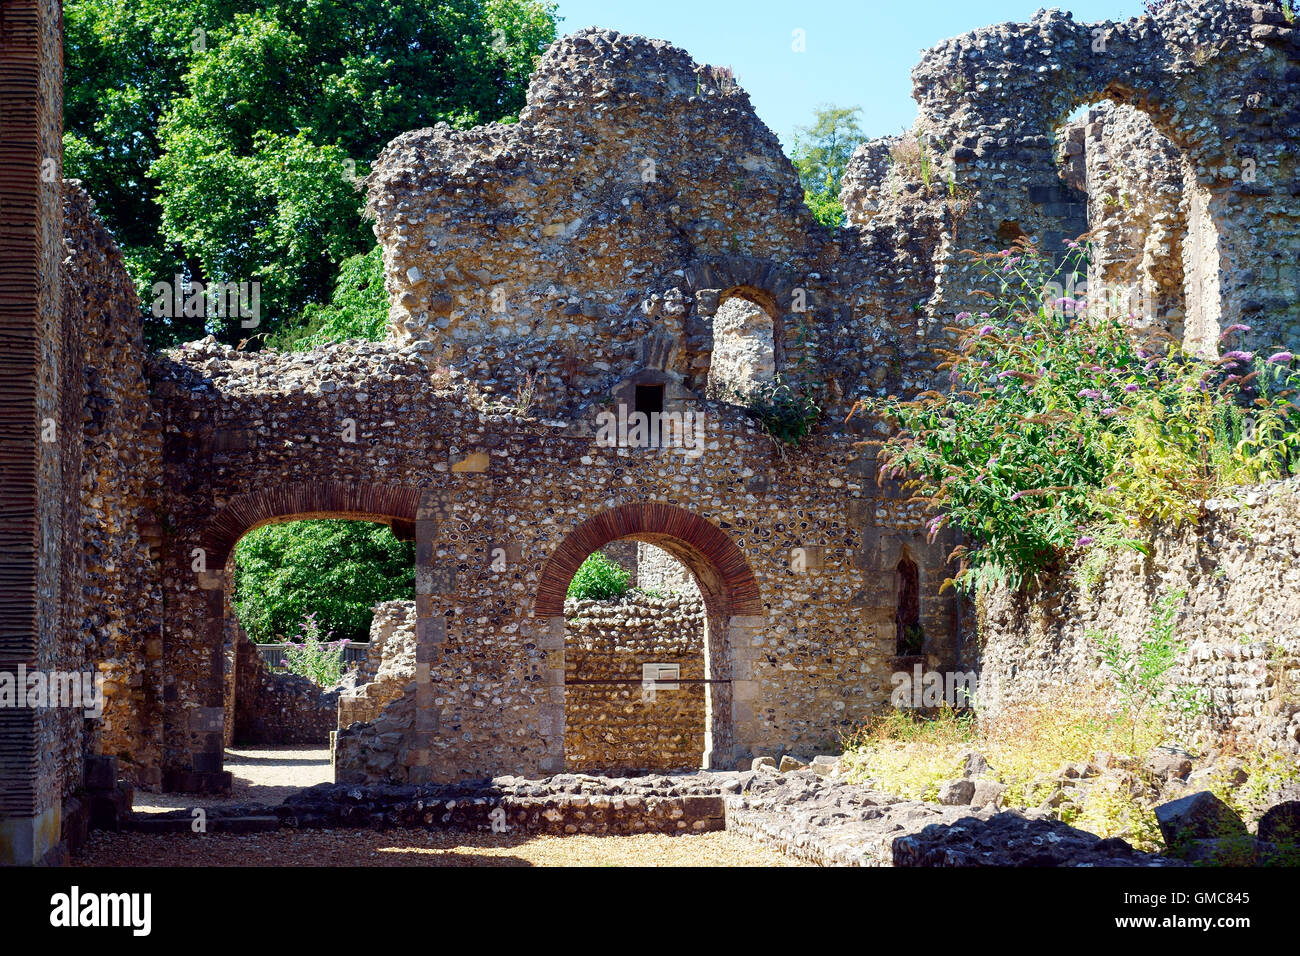 WOLVESLEY CASTLE FROM THE BAKE HOUSE TO THE TREASURY Stock Photo